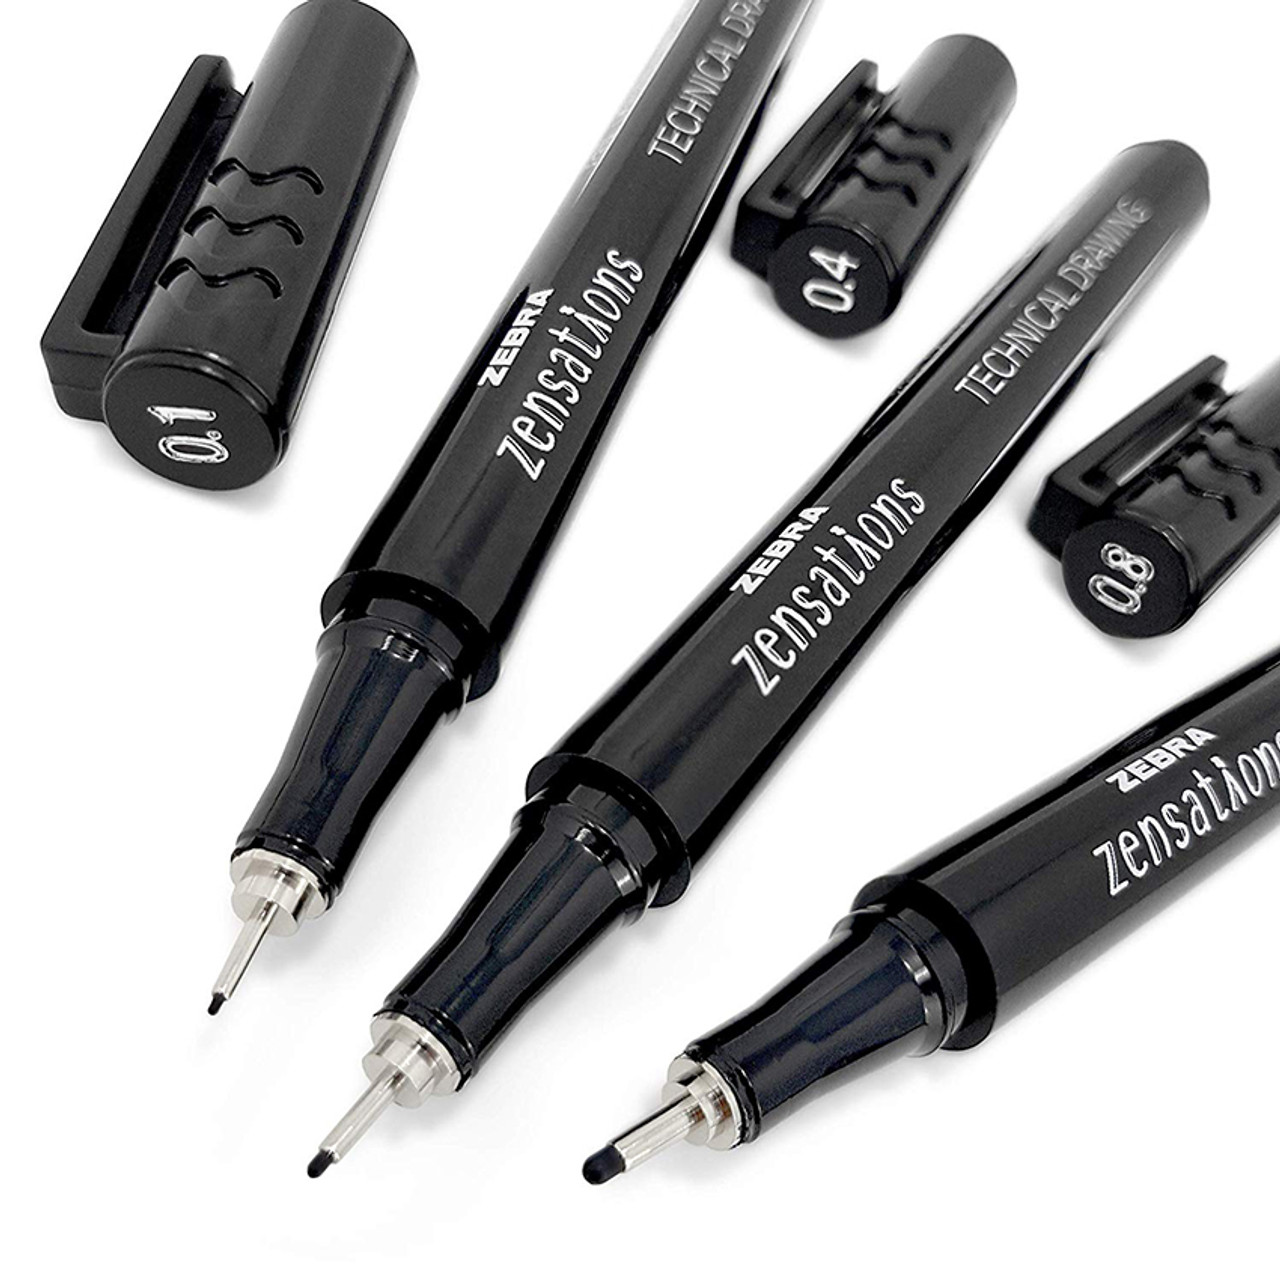 Zebra Zensations technical drawing pens